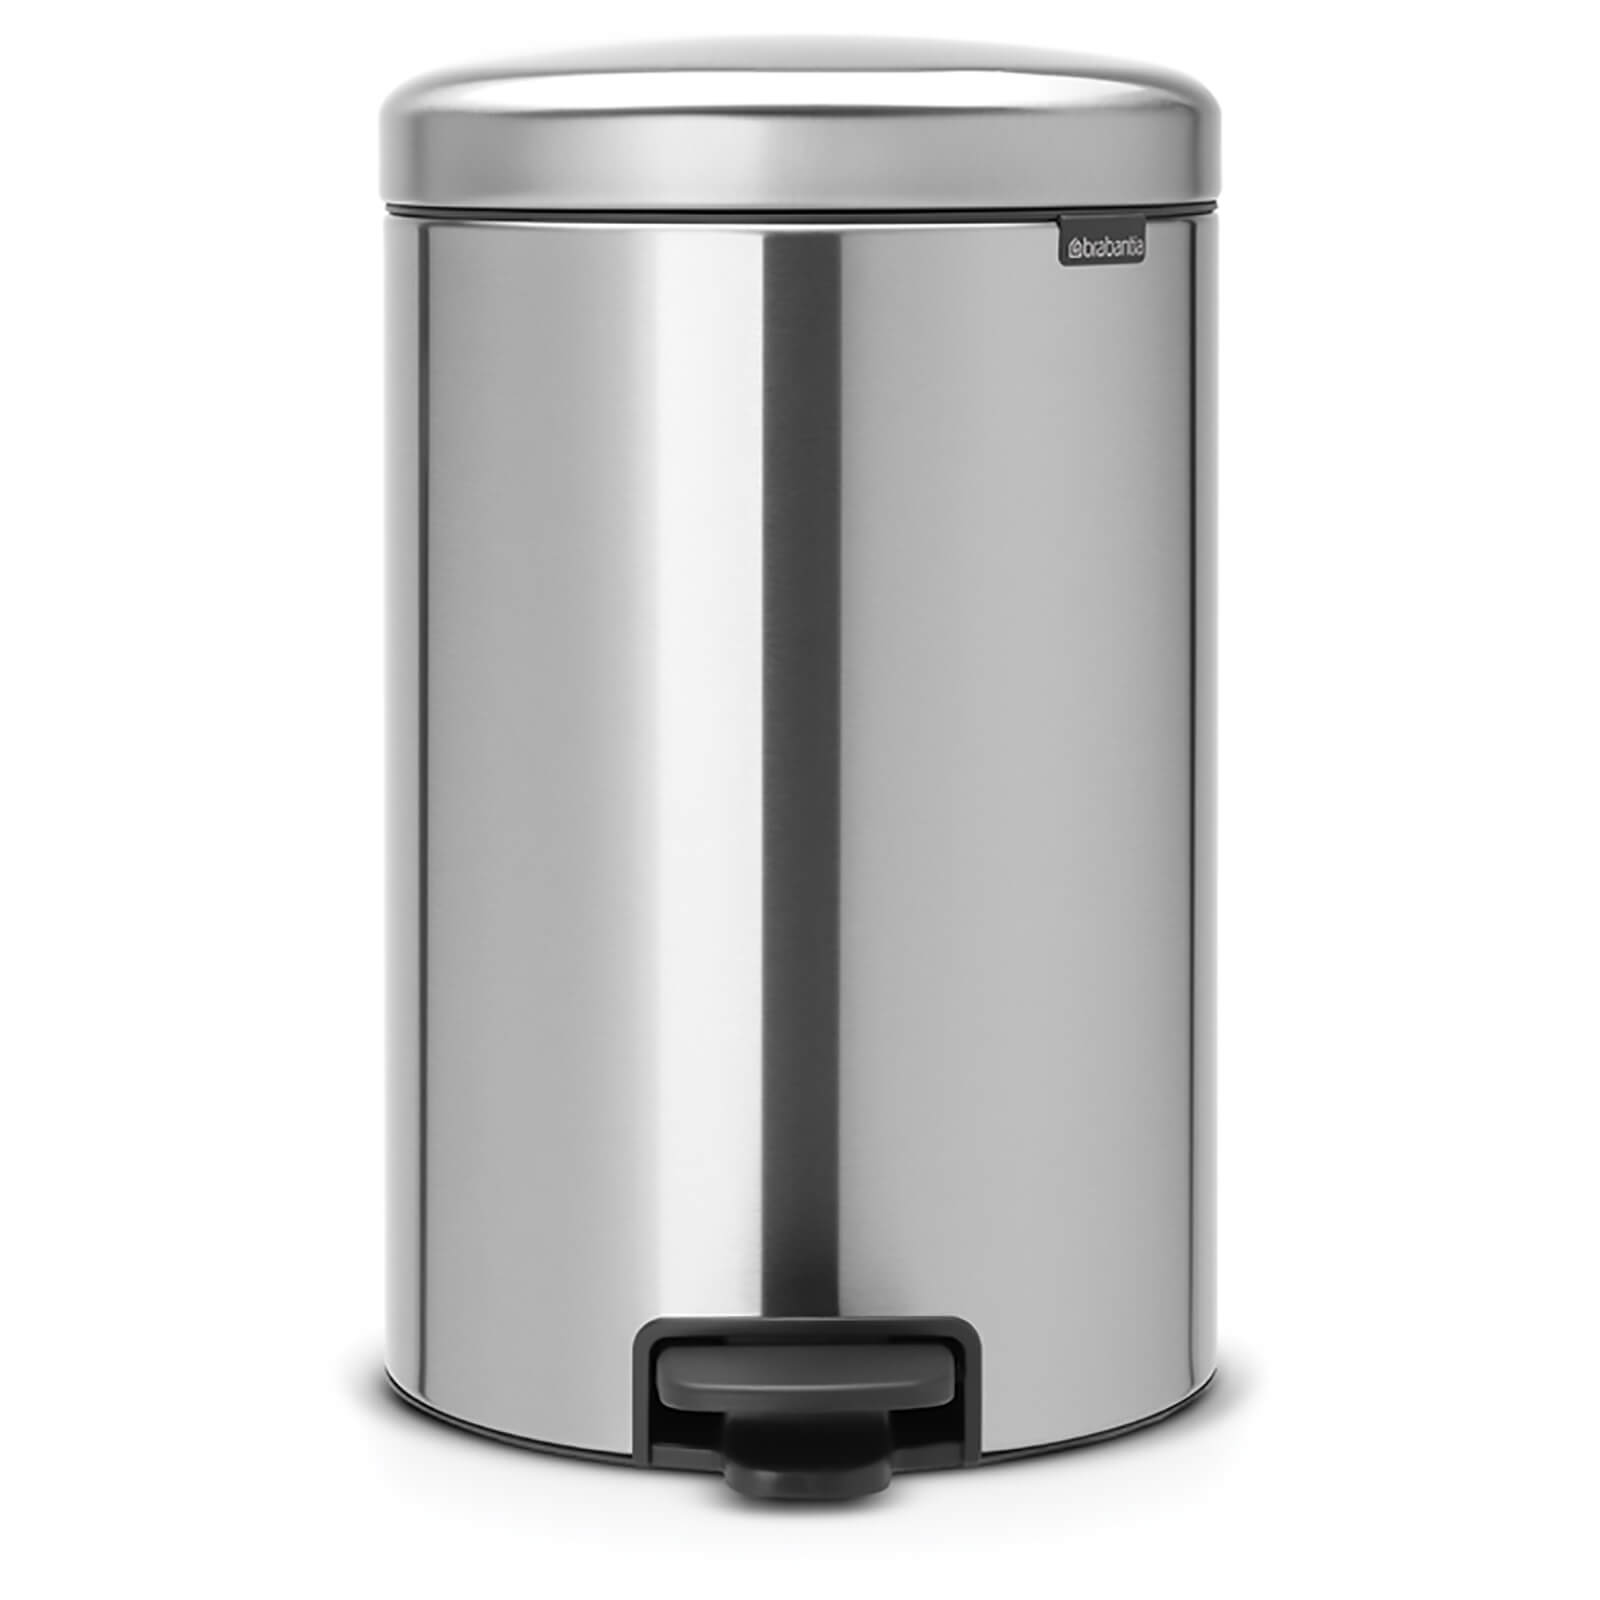 Brabantia New Icon 20 Litre Pedal Bin - Matt Steel Fingerprint Proof